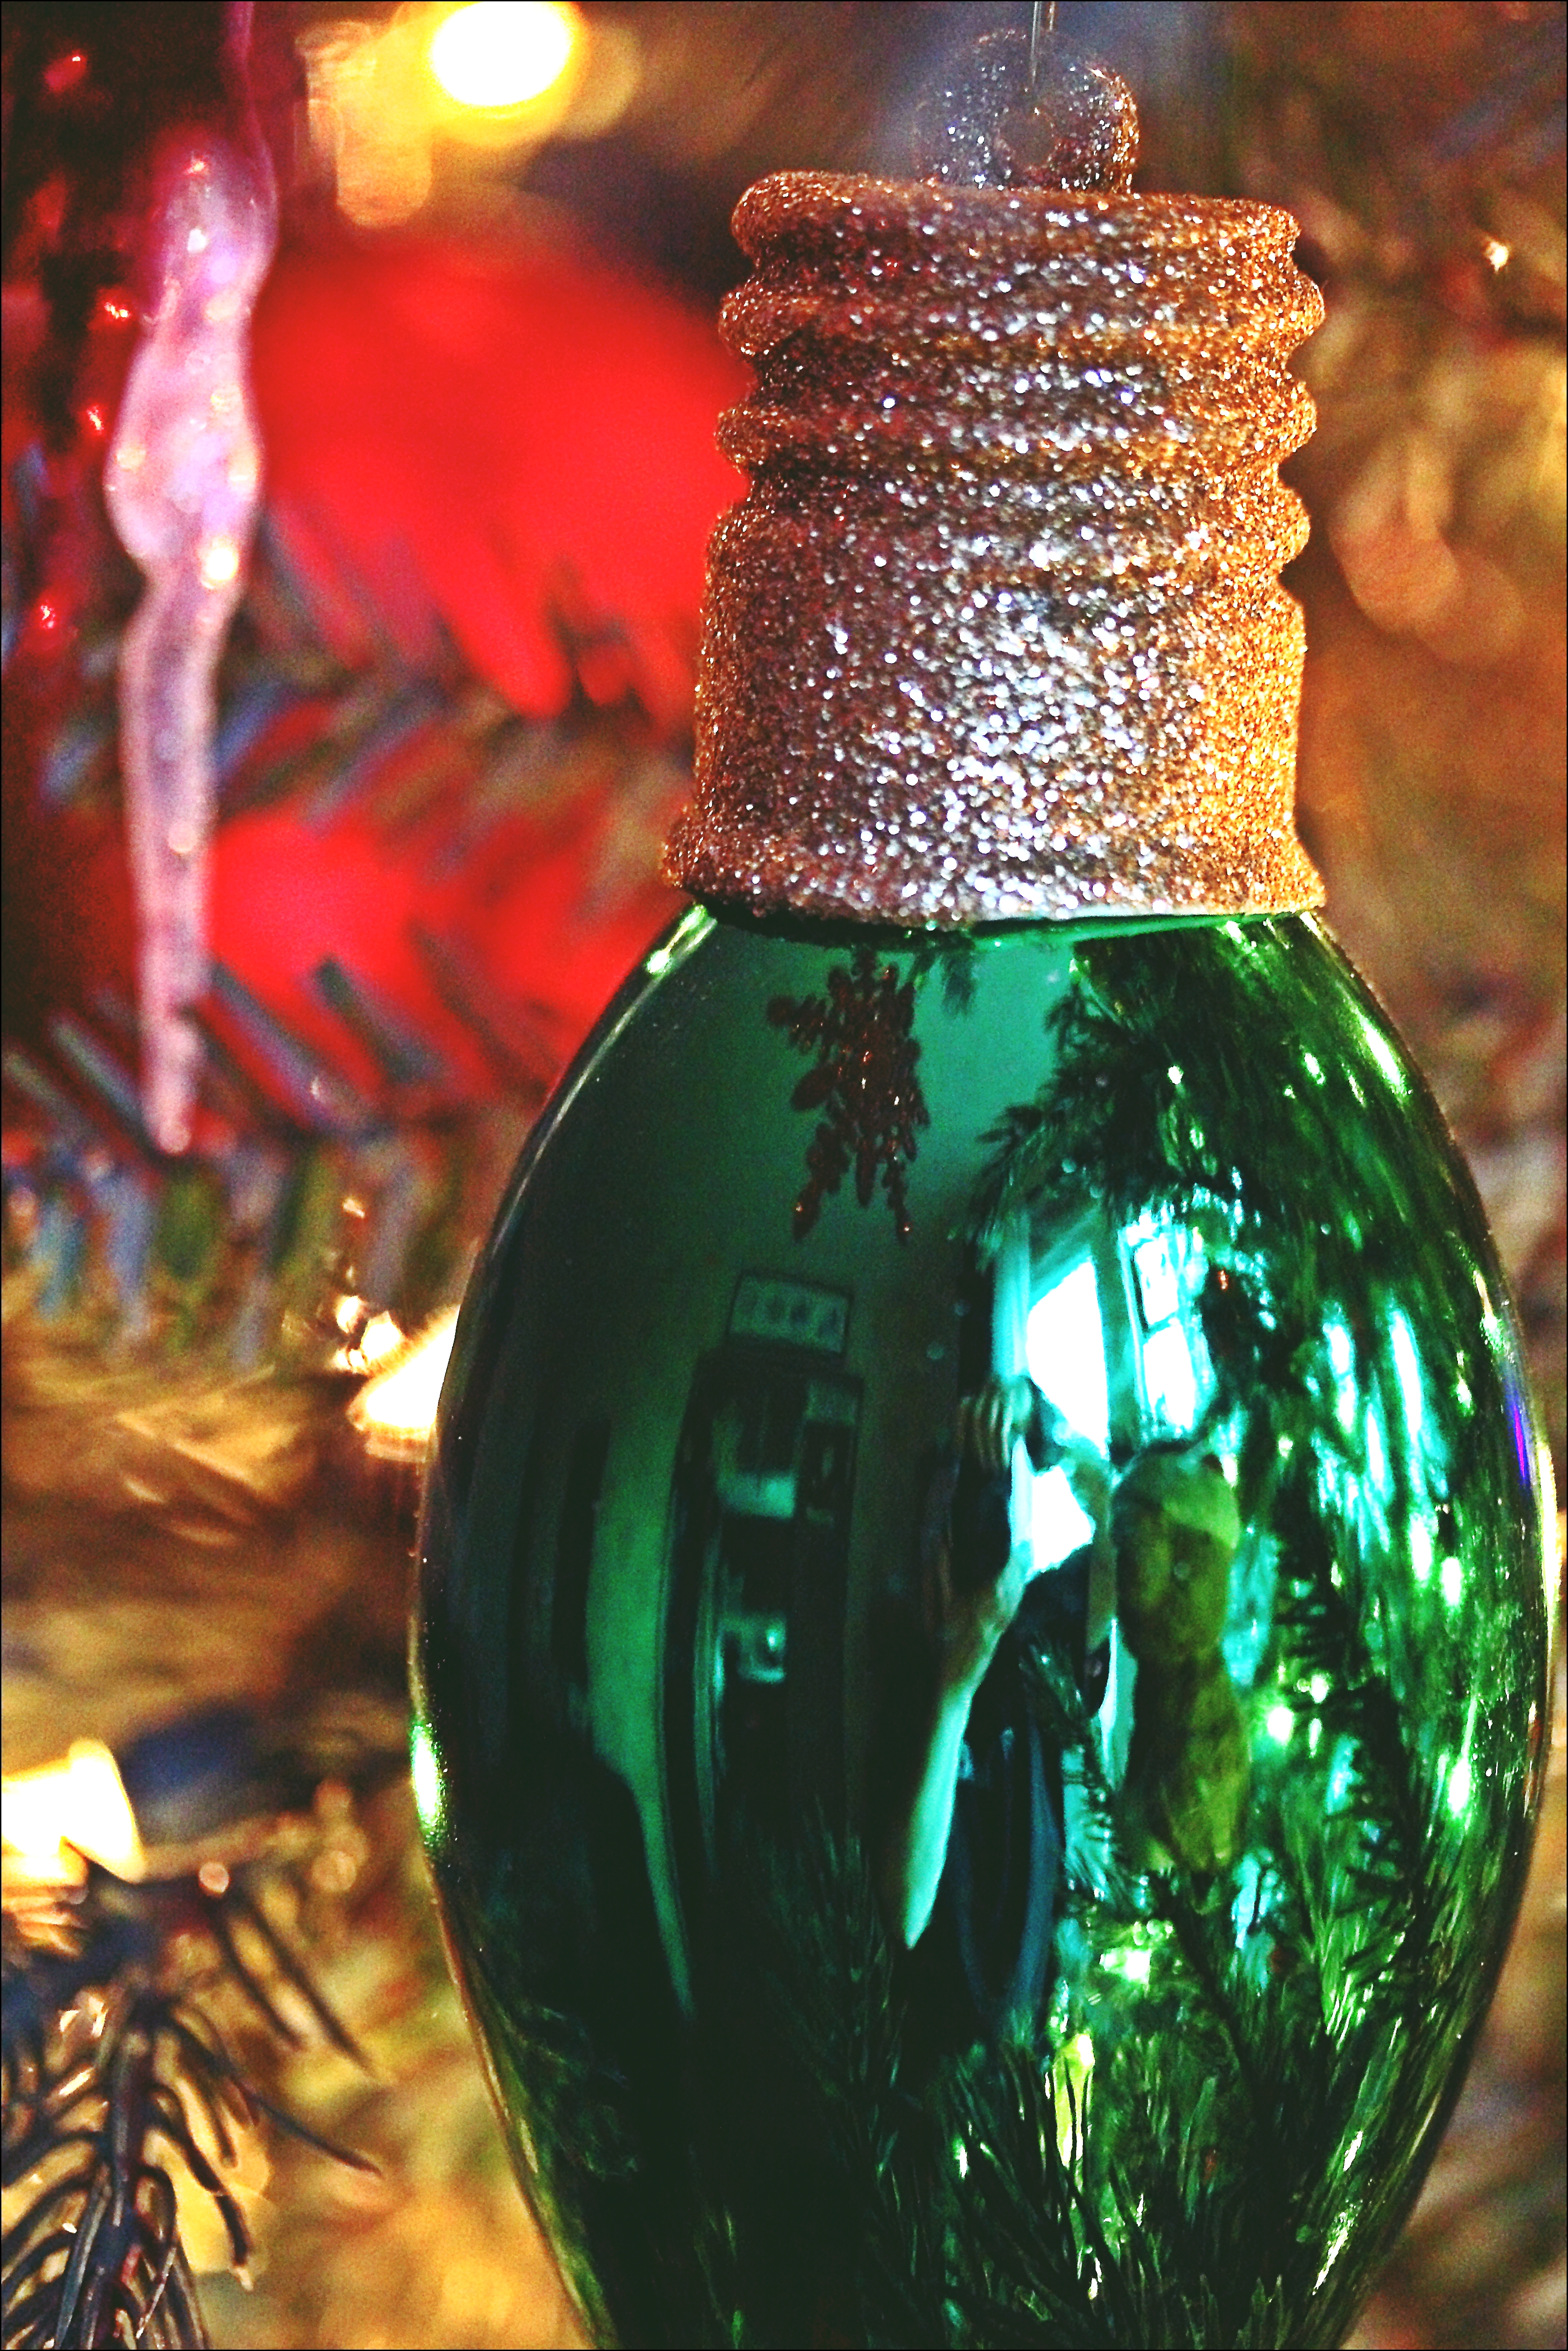 365 Days In Colour: Dark Green & Or Gold. christmas, decorations, canon, morninglight, 60d. buy photo